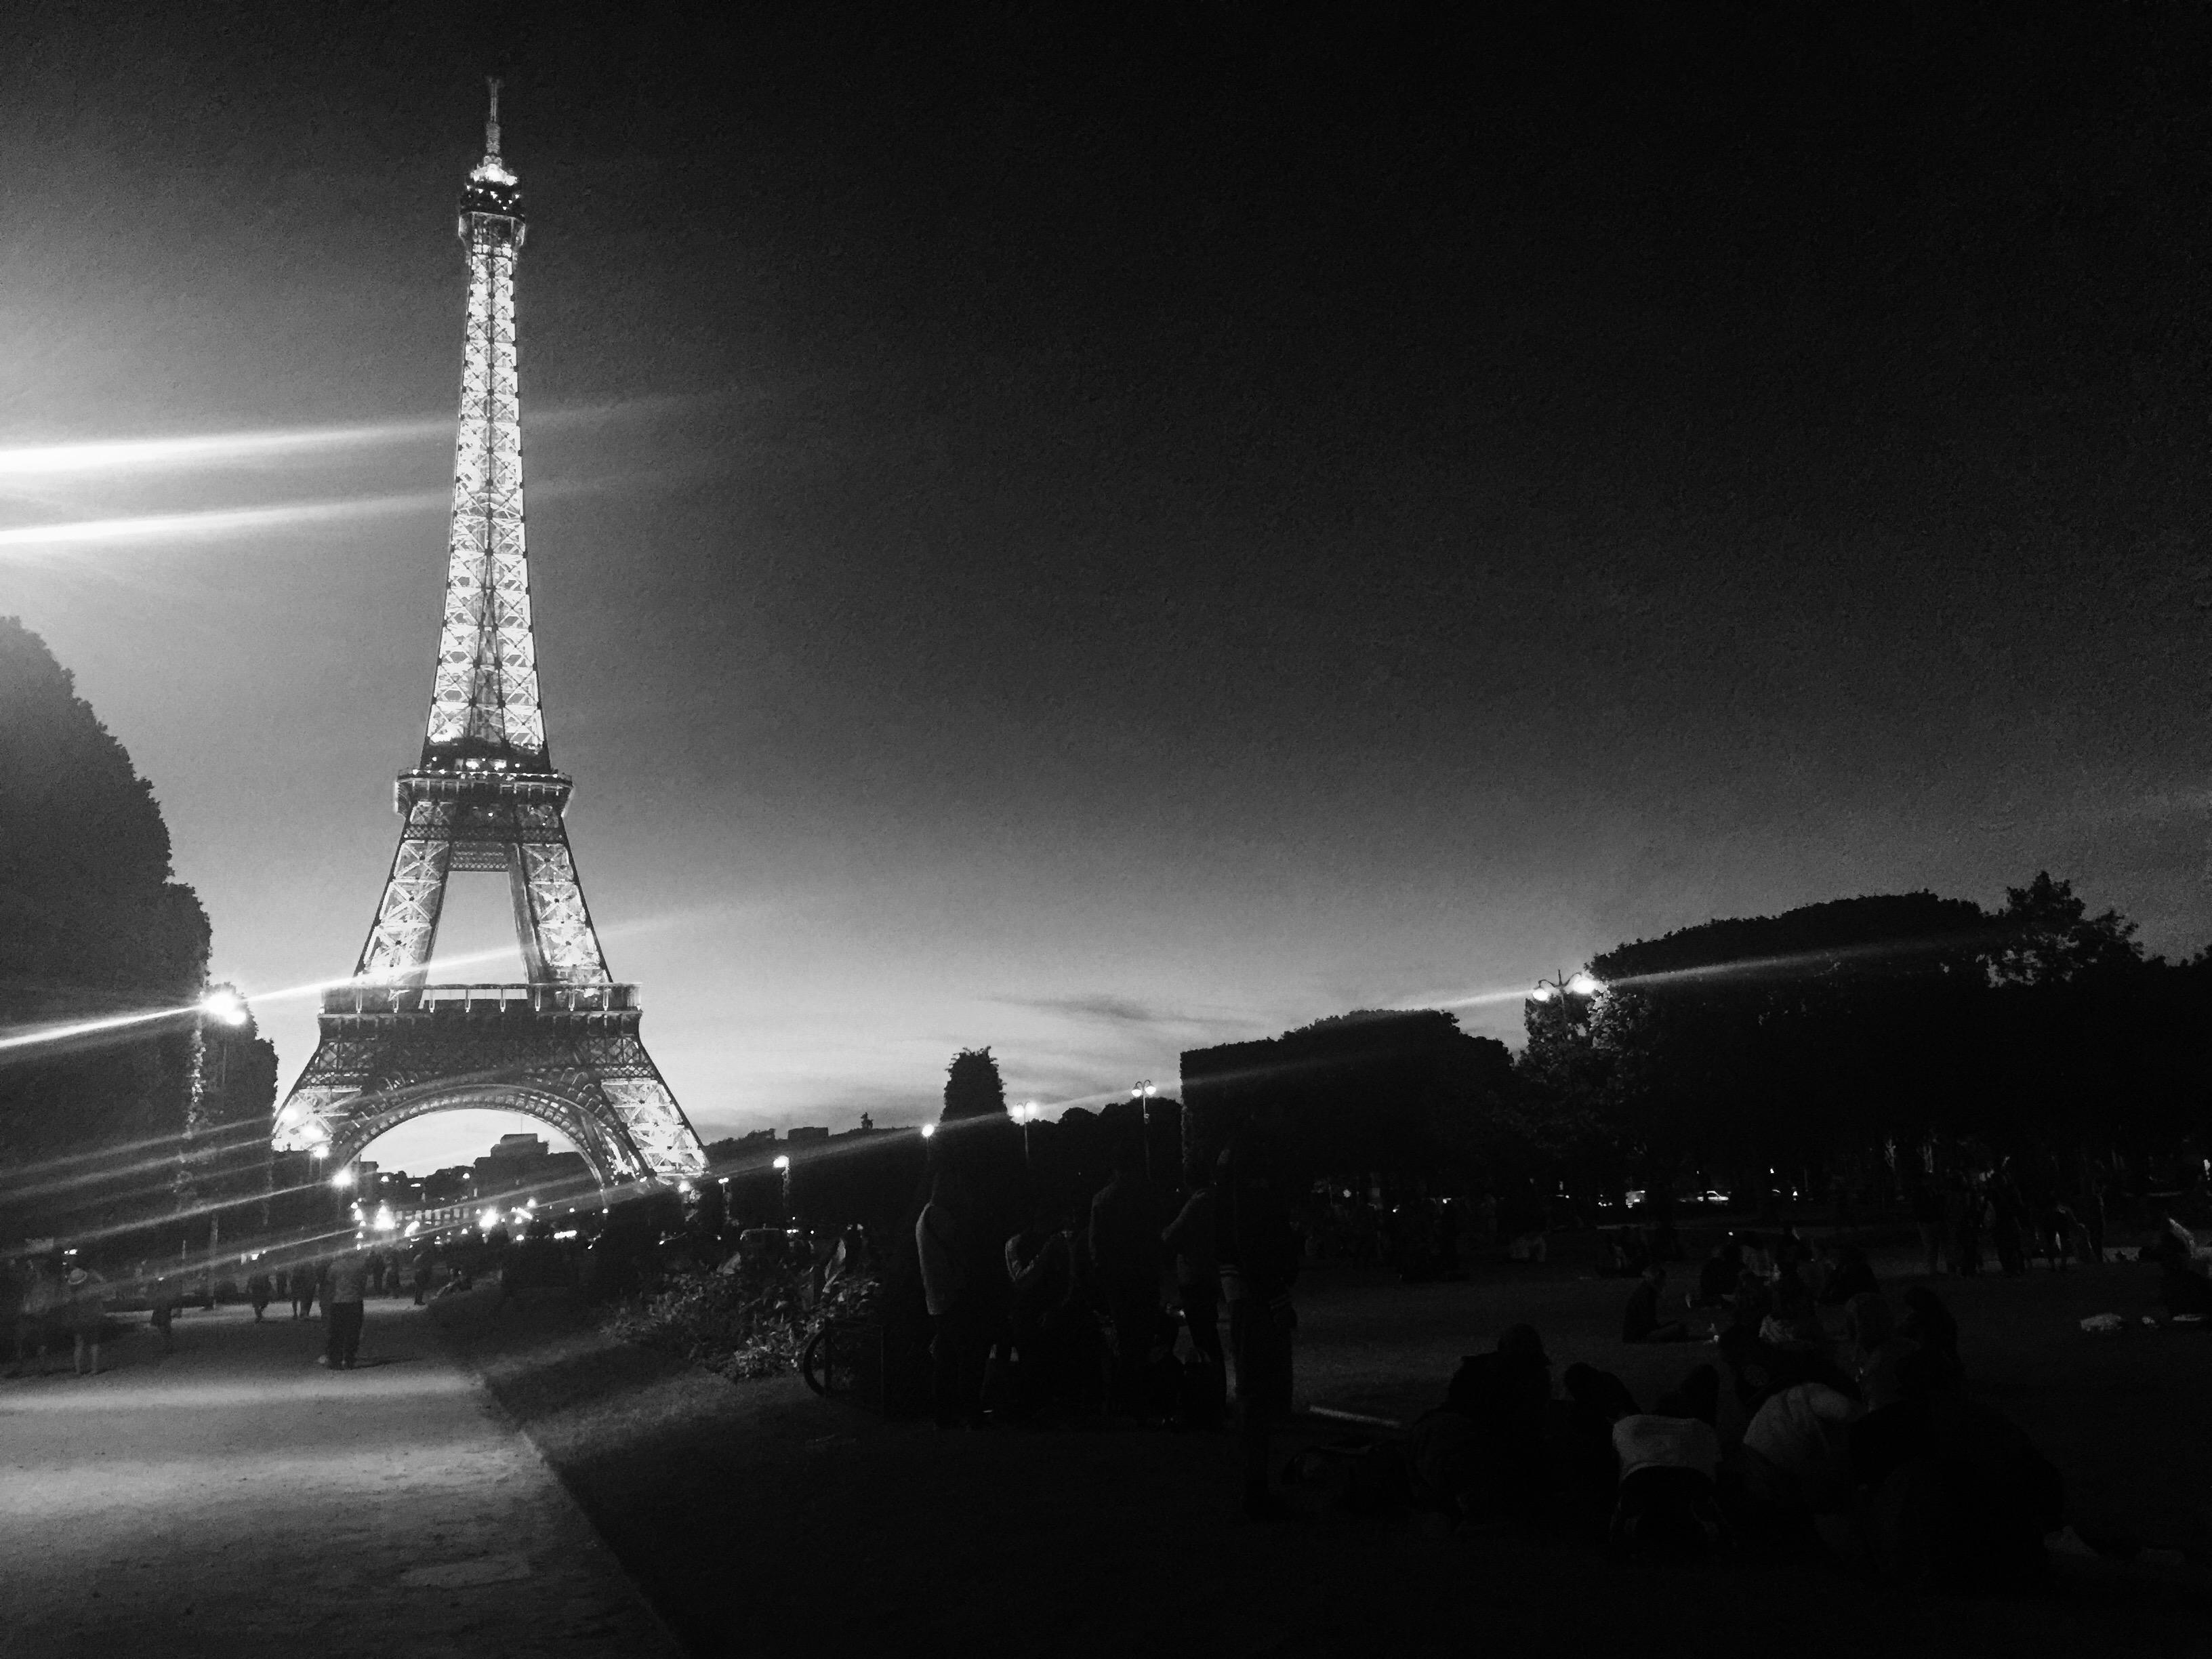 Eiffel Tower at night noir filter